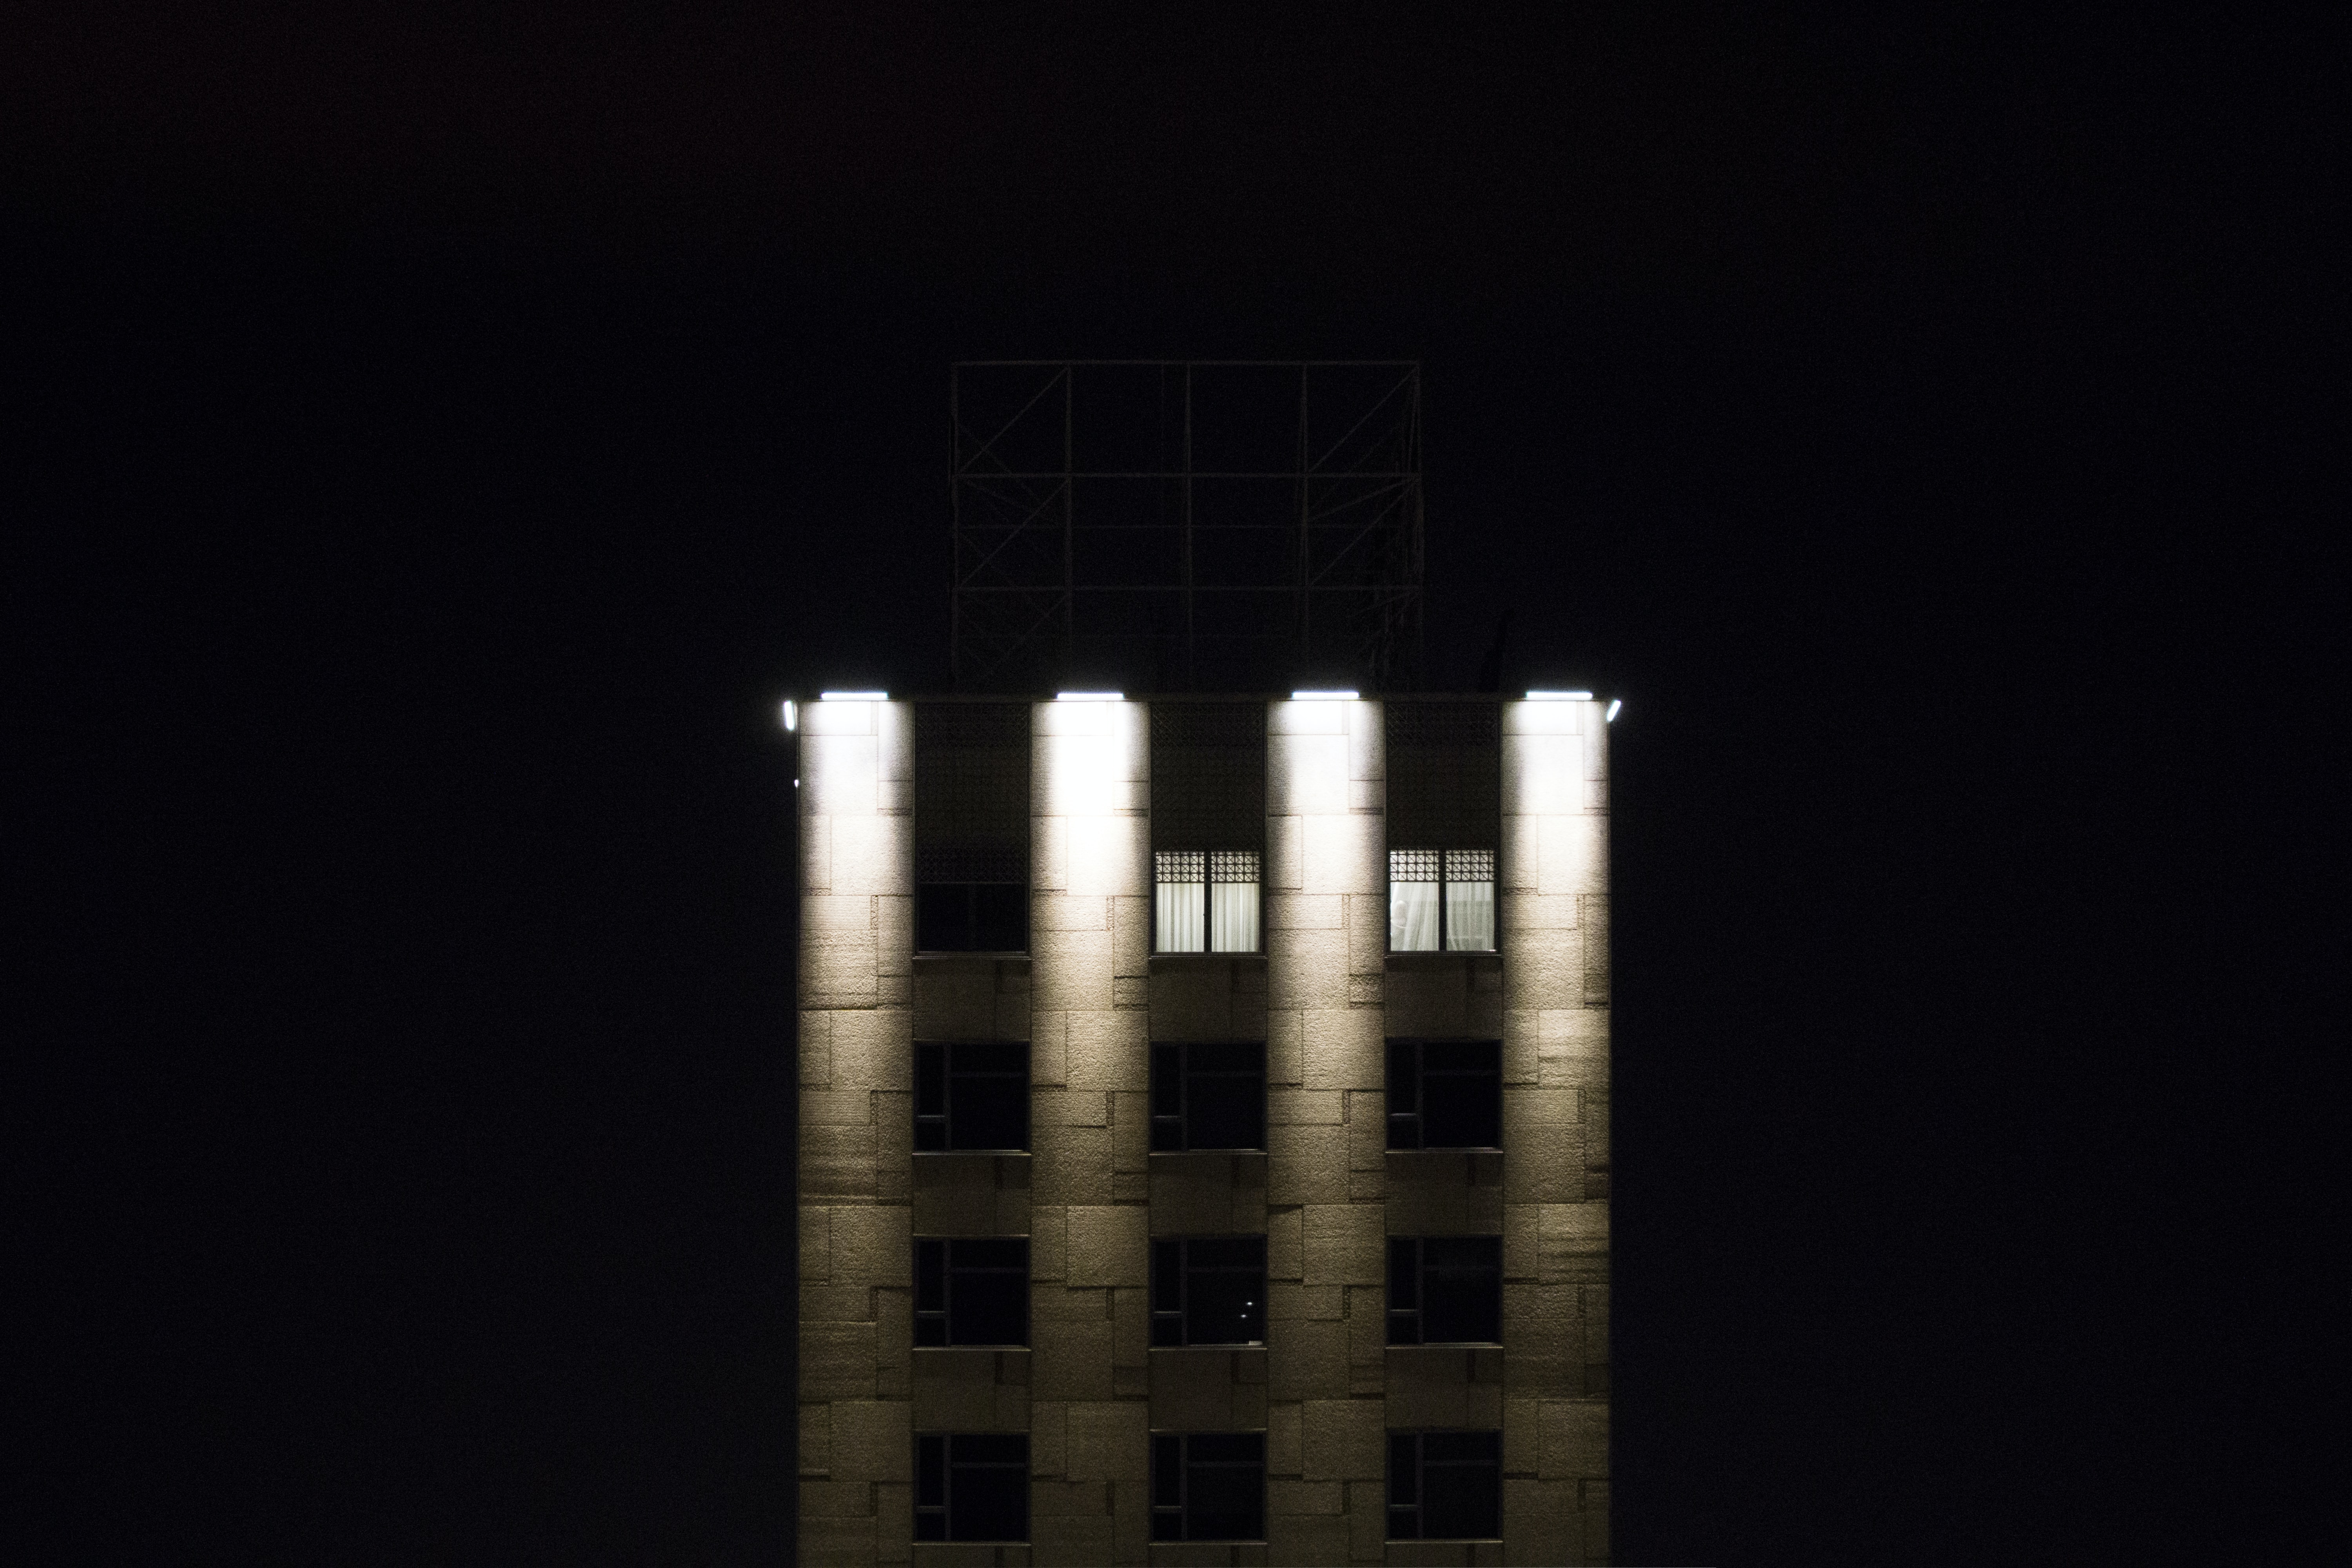 gray concrete building with four light